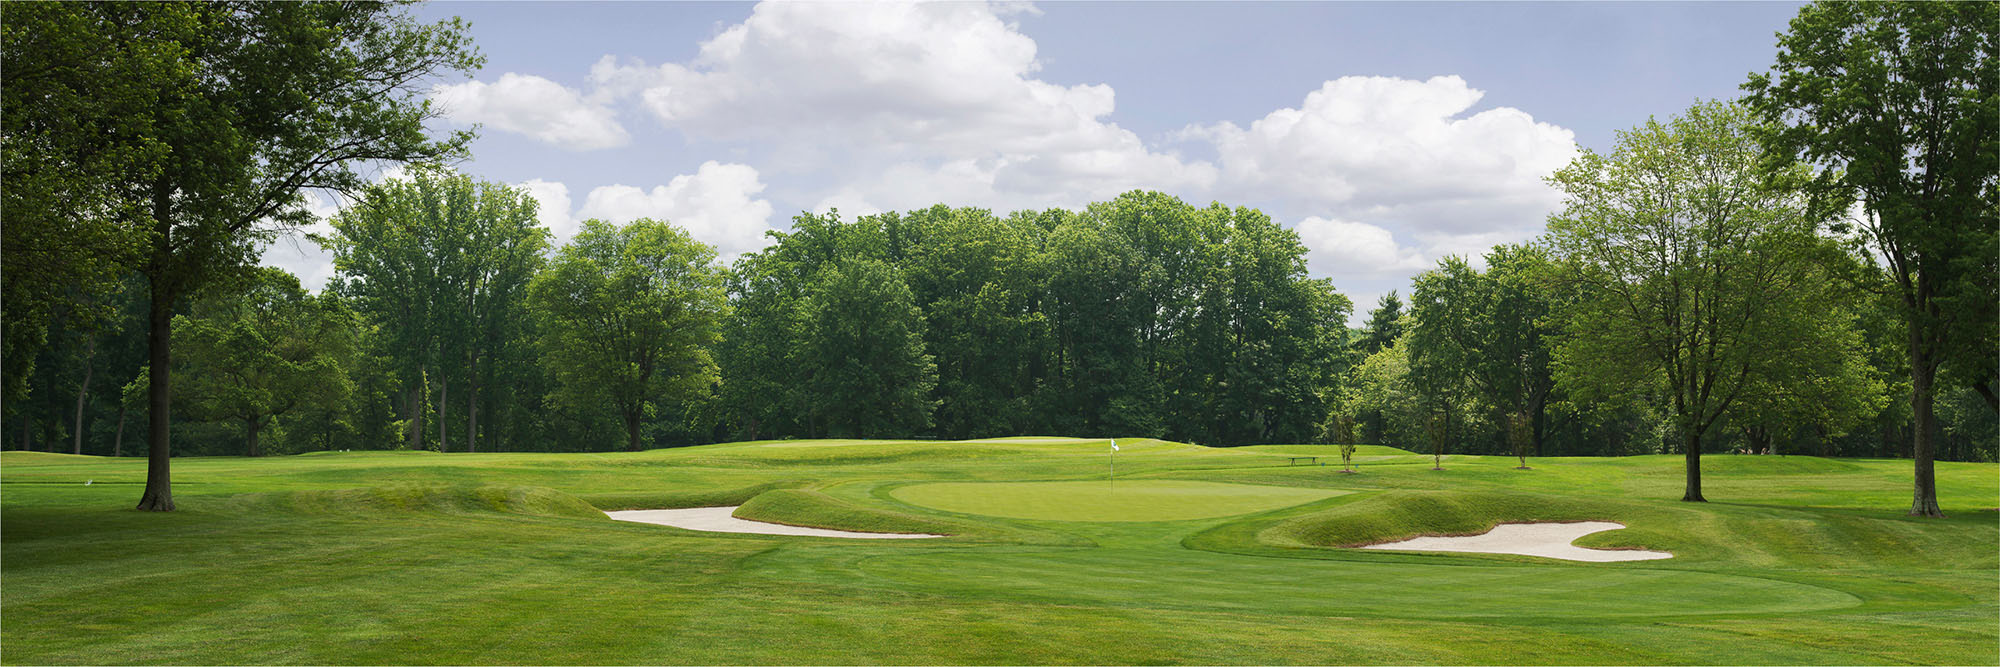 Golf Course Image - Hillendale Country Club No. 15